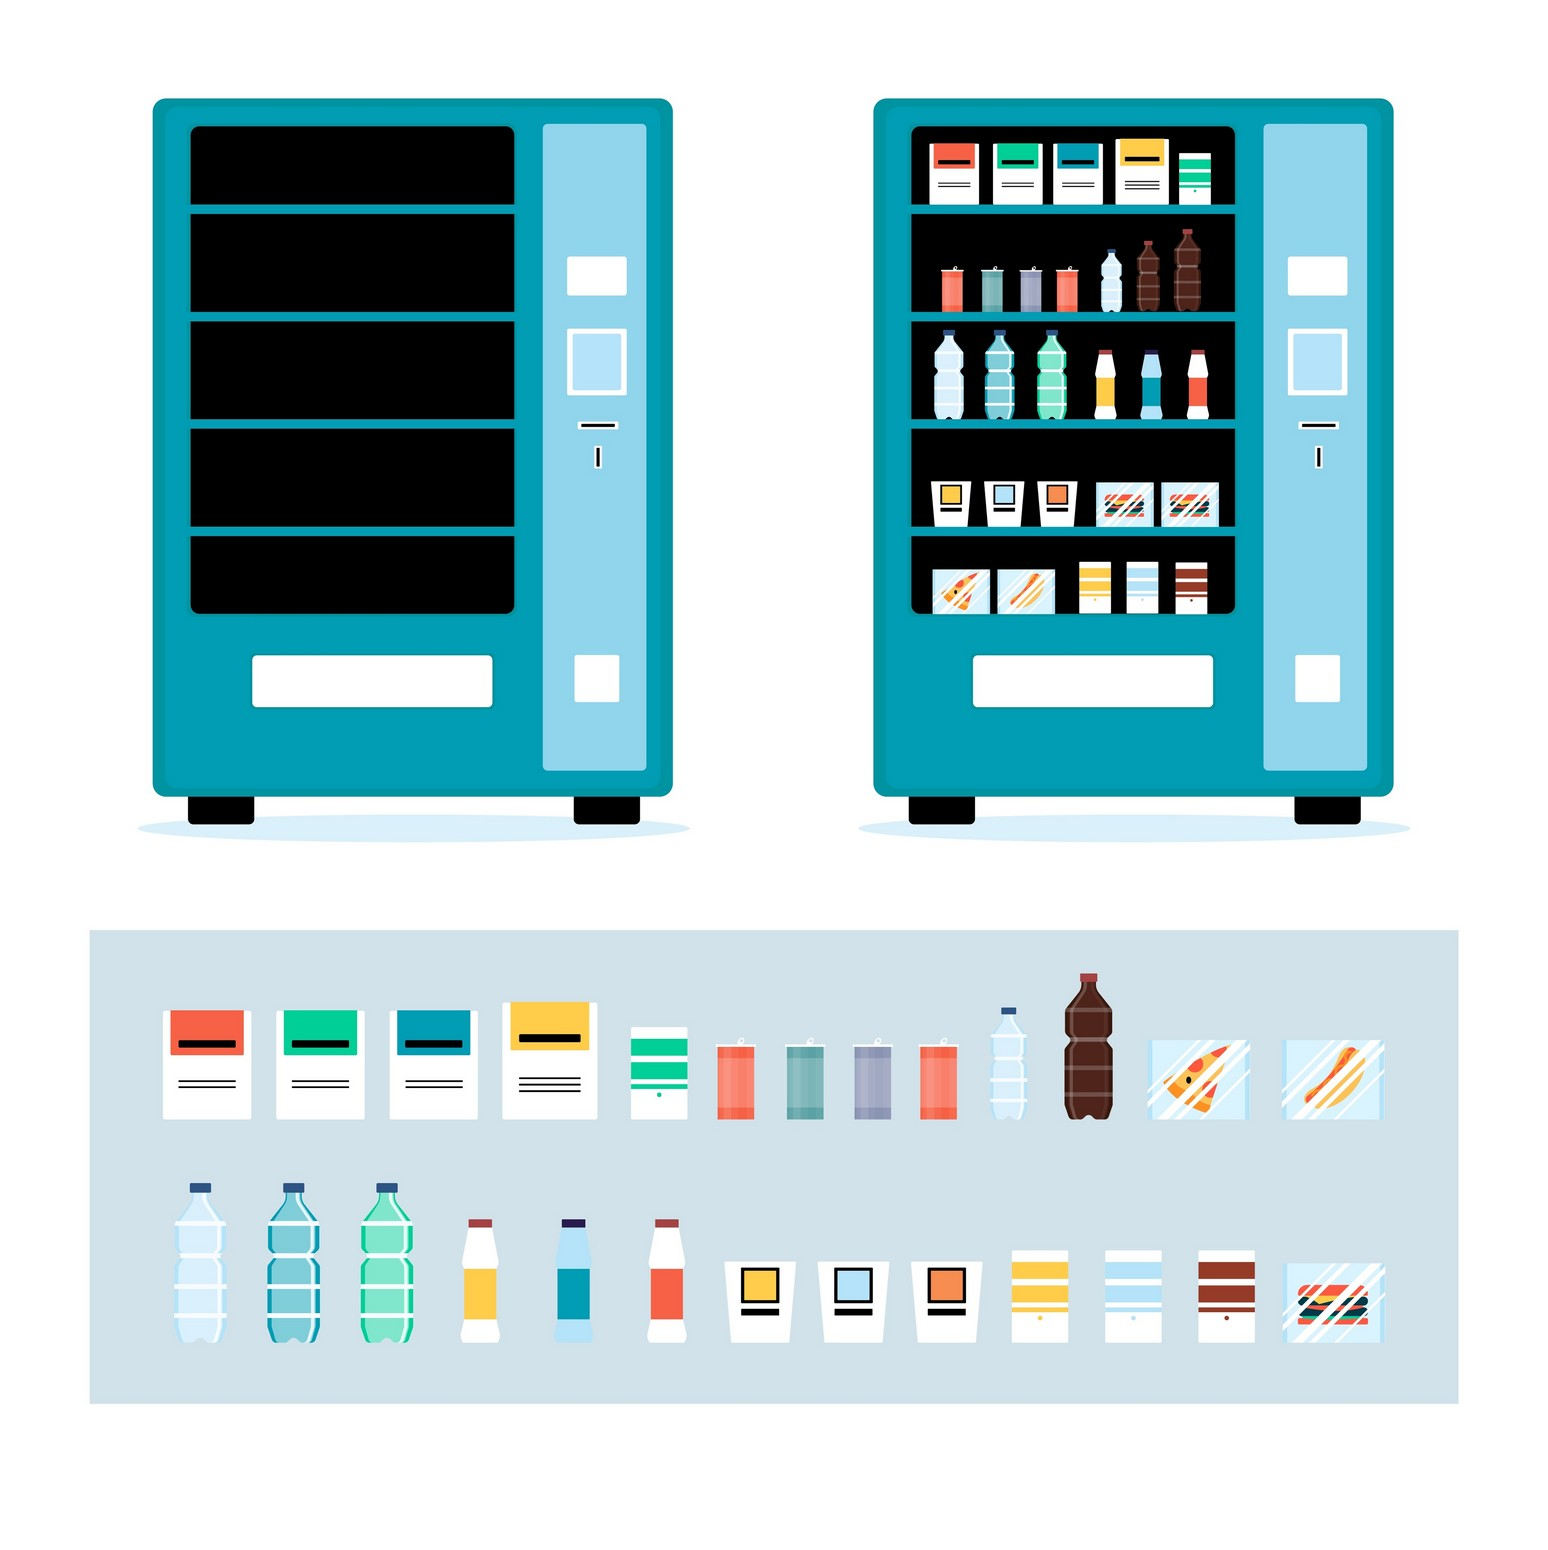 San Francisco Bay Area Vending | State-of-the-Art Technology | Refreshment Services